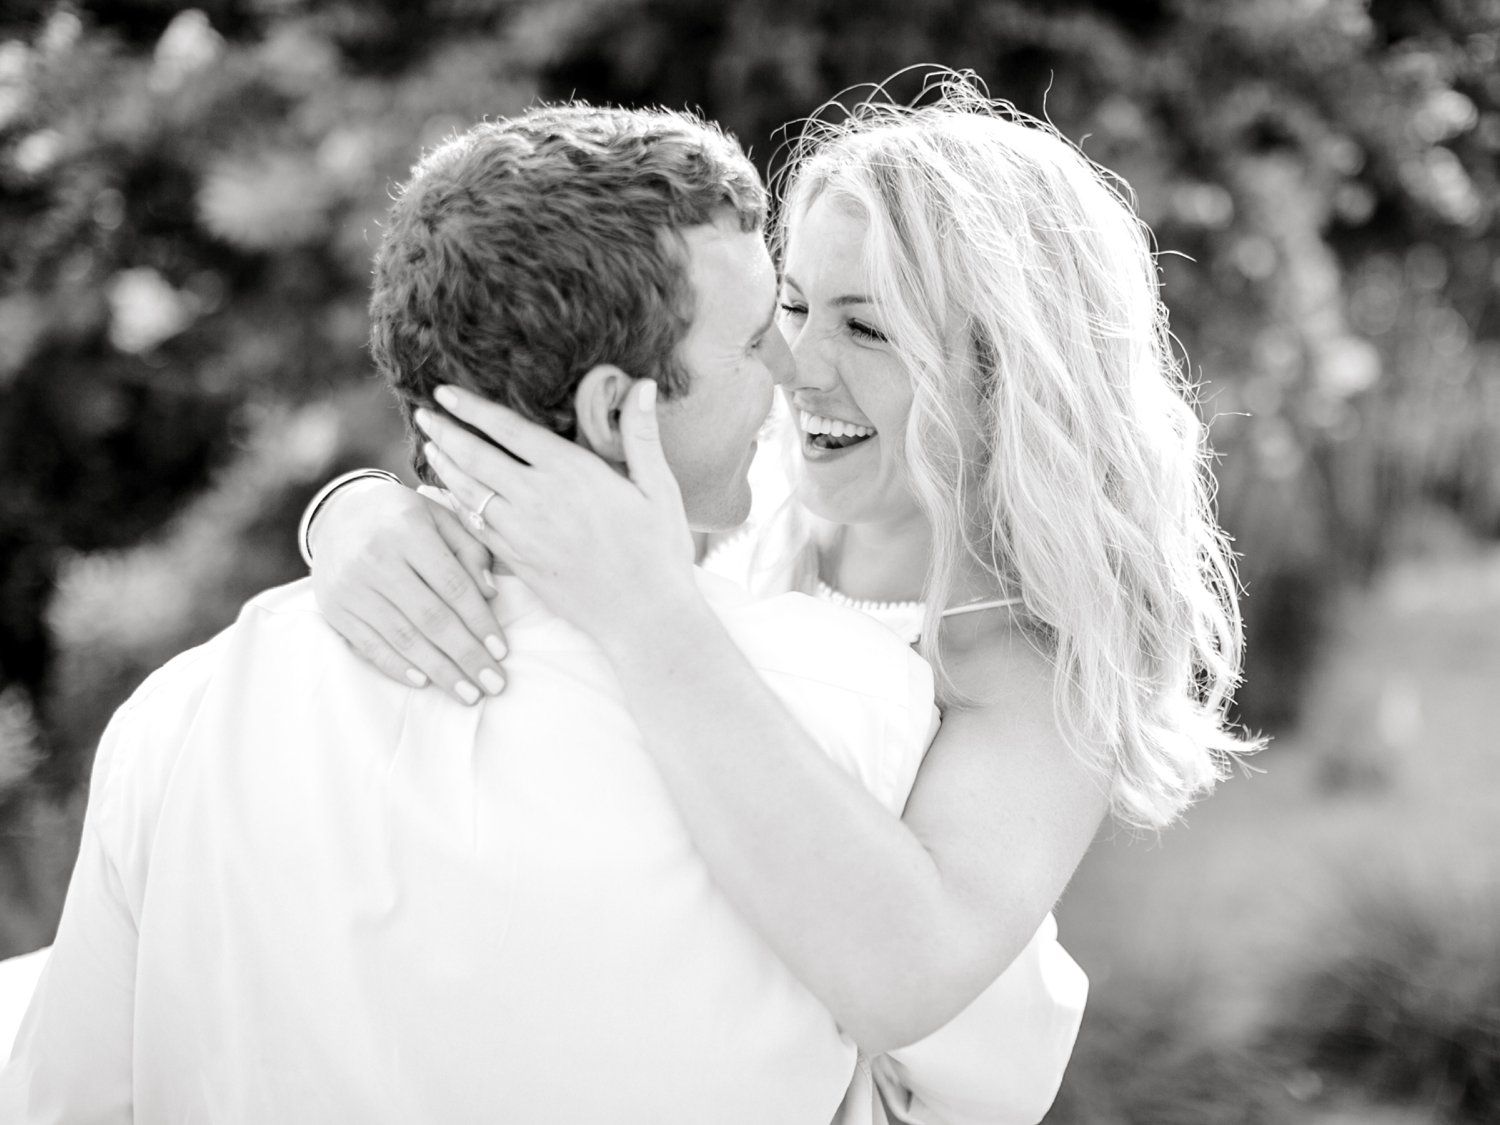 Allison_and_Clay_Smart_Engagements_ALLEEJ_Lubbock_Photographer_0060.jpg